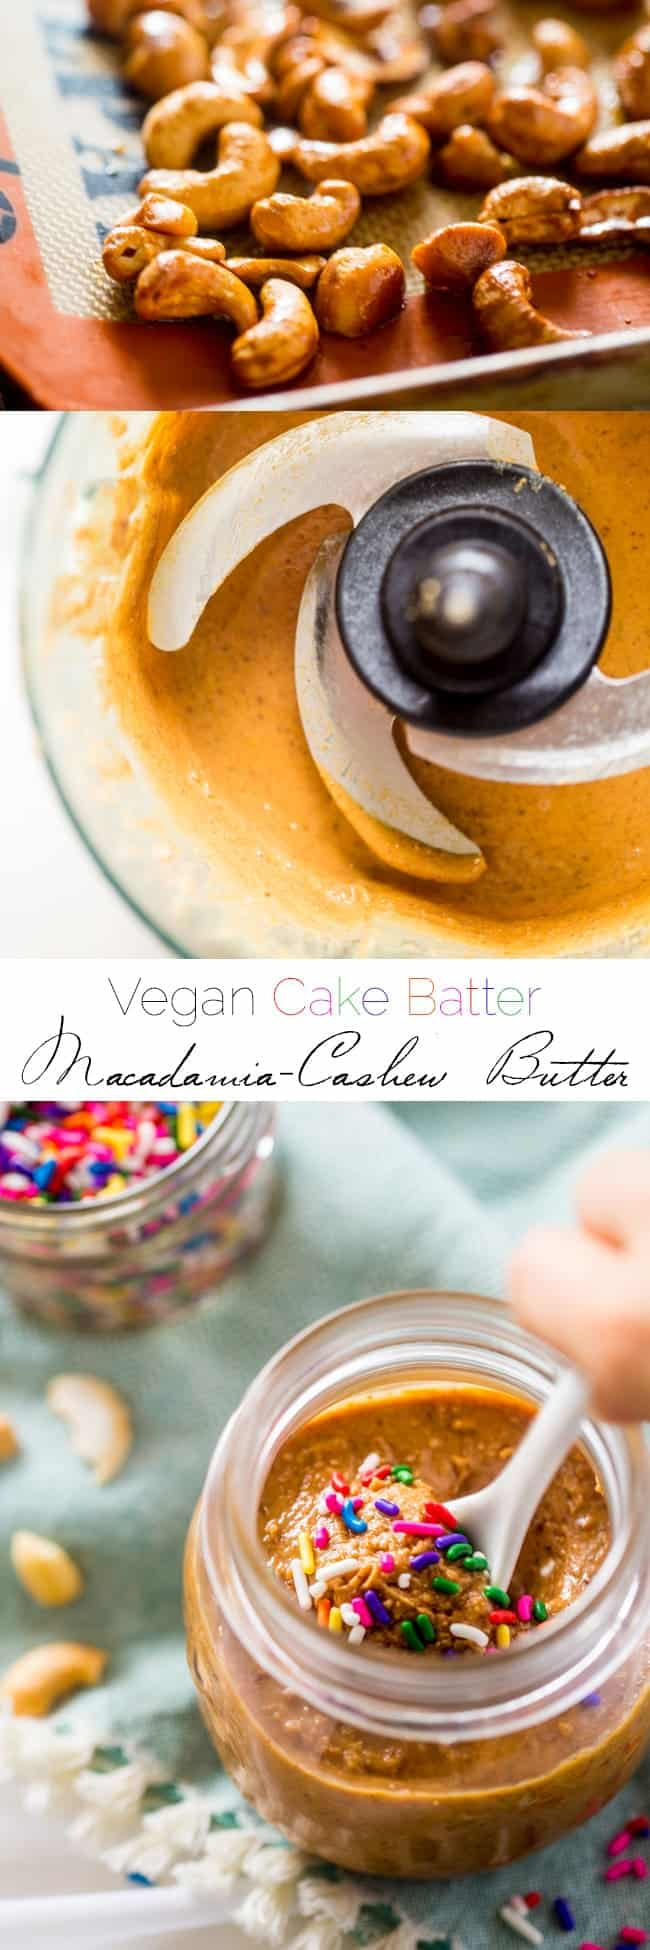 Vegan Cake Batter Macadamia Cashew Butter - This 6 ingredient vegan cake batter cashew butter is made extra delicious with macadamia nuts! It's an easy, healthy spread that tastes like funfetti cake! | Foodfaithfitness.com | @FoodFaithFit